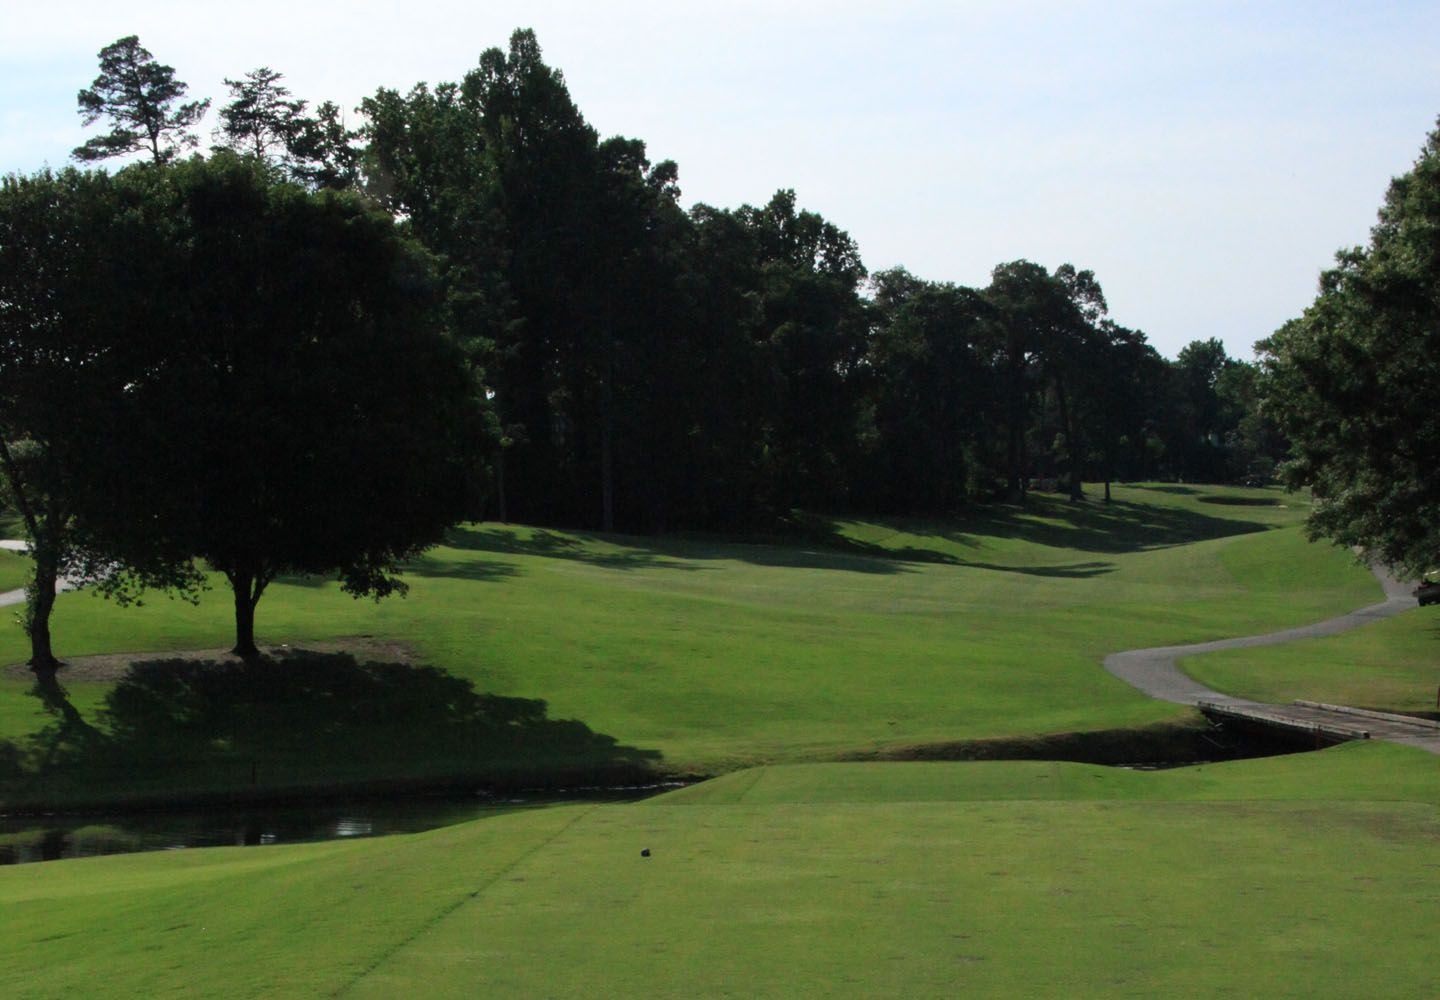 Sedgefield Country Club Greensboro Nc Top Golf Courses Golf Courses Top Golf